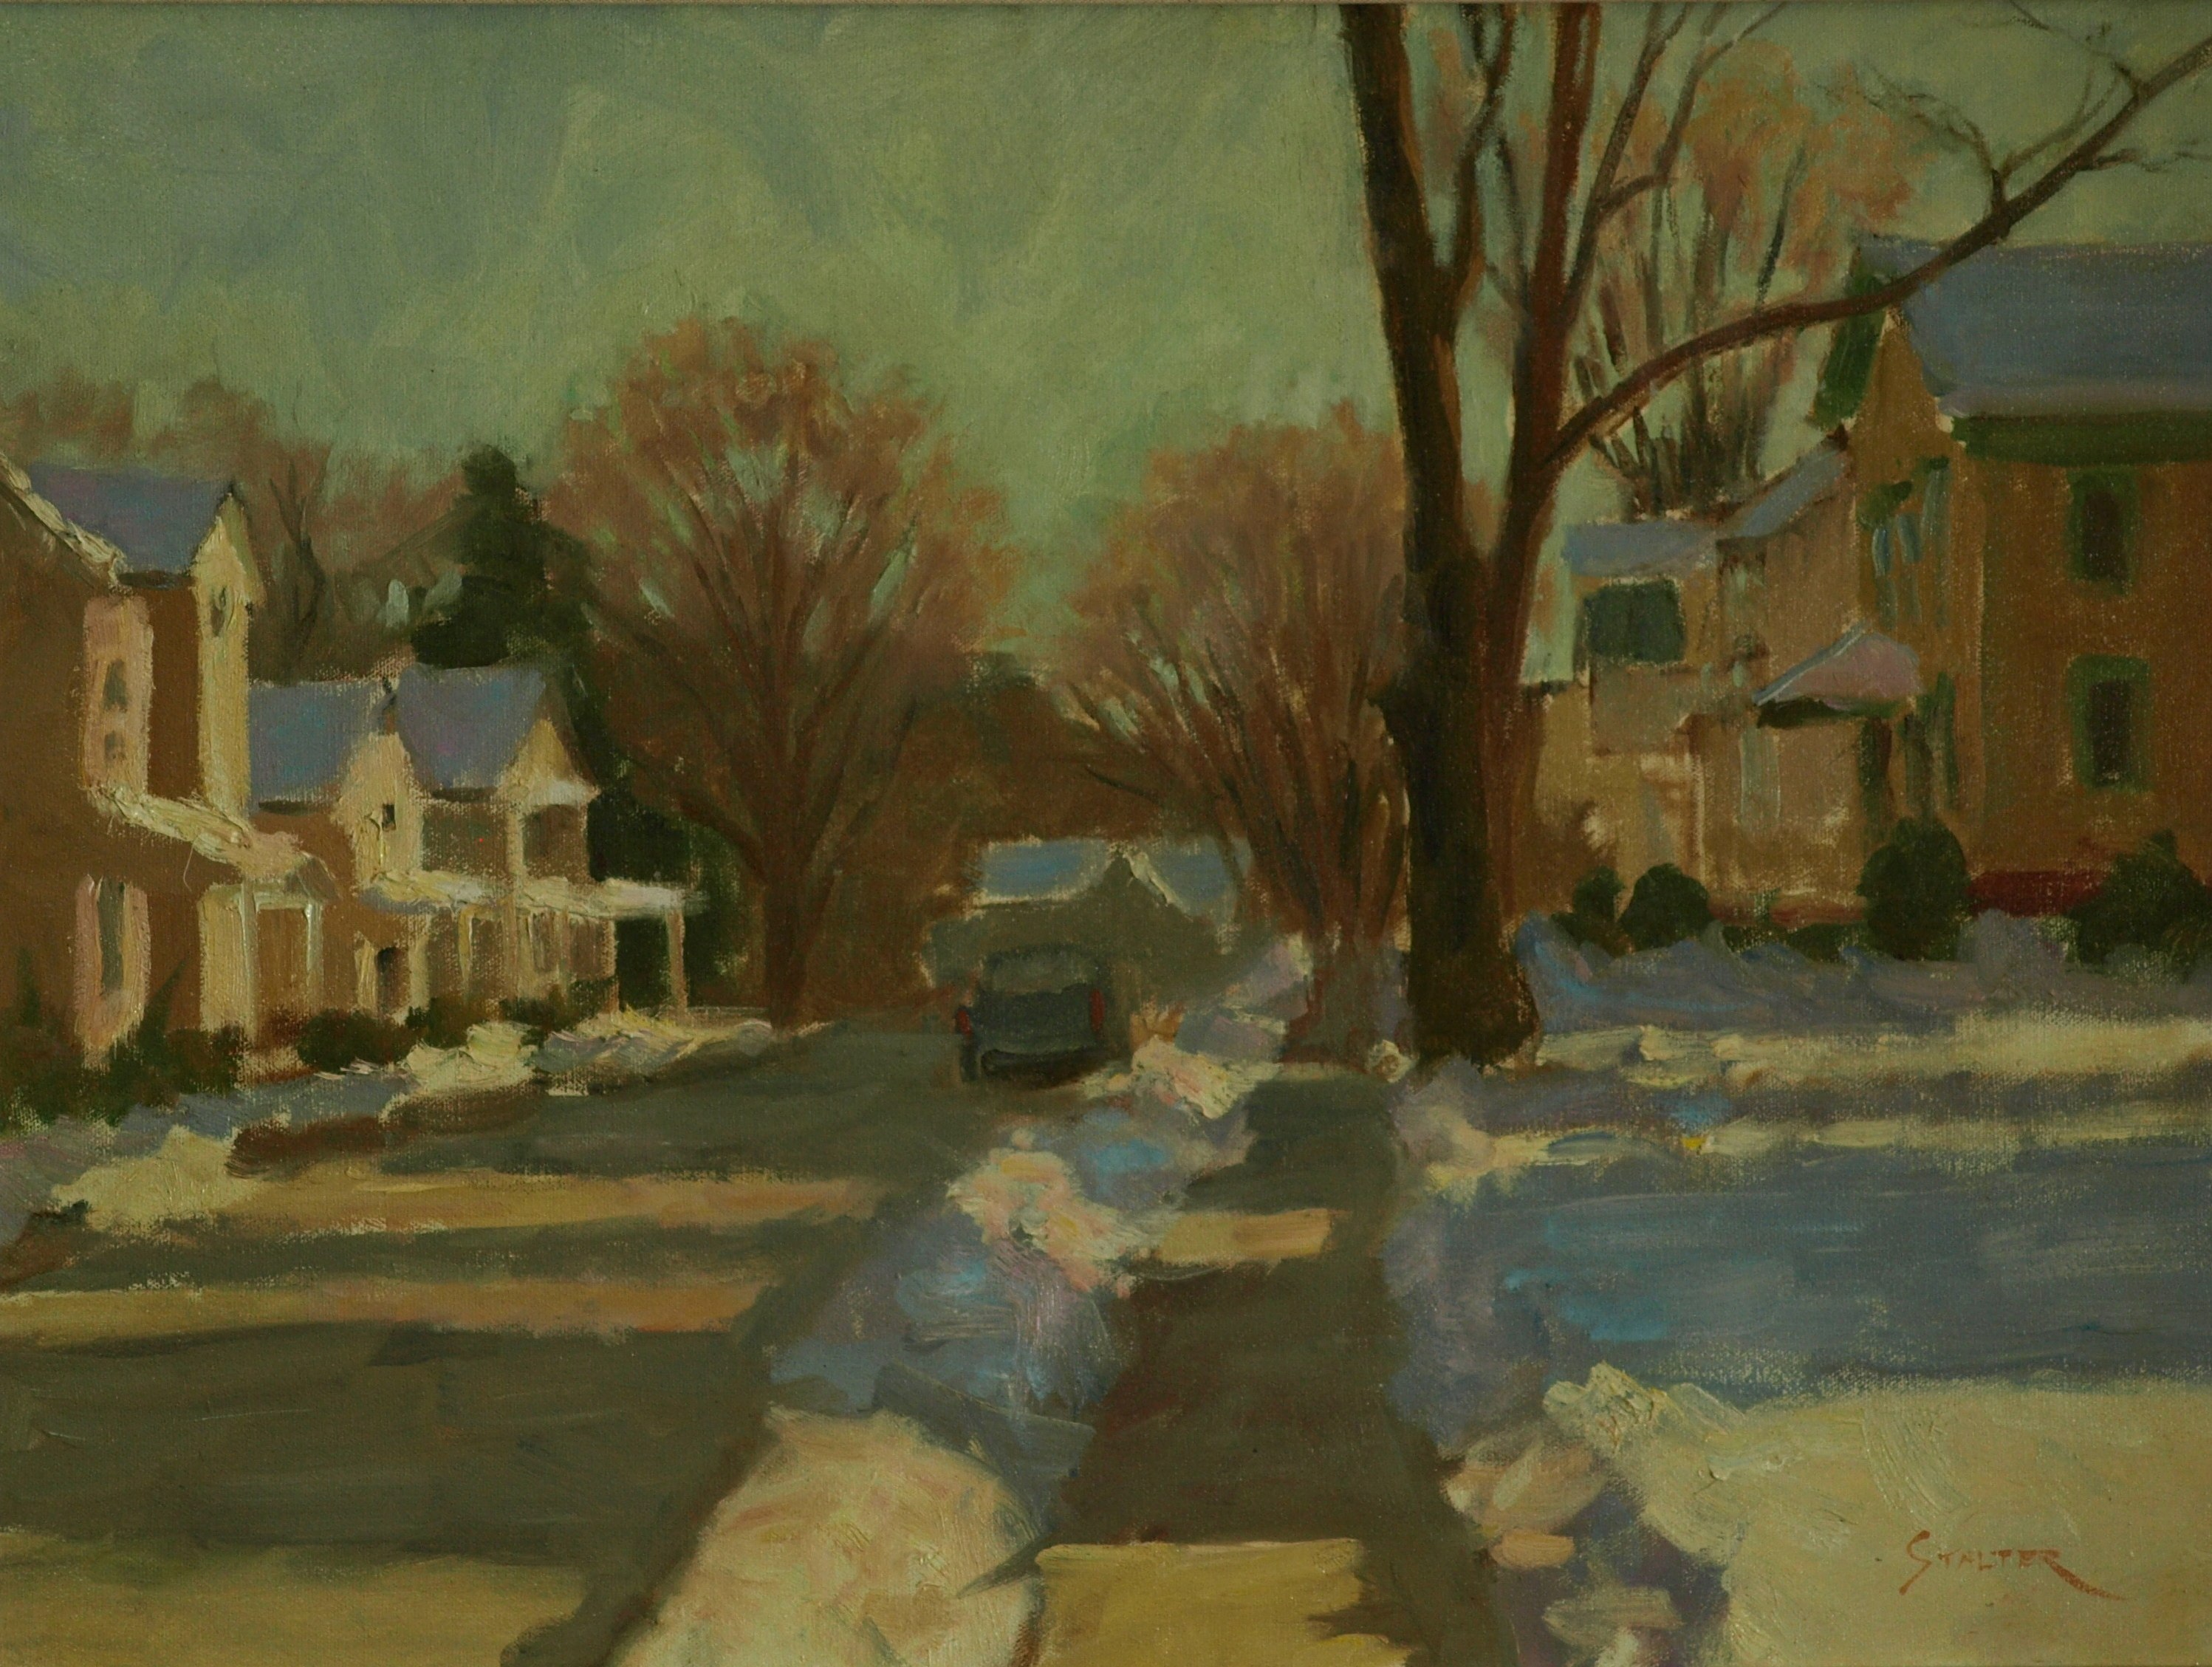 Deep Snow on South Main Street, Oil on Canvas, 18 x 24 Inches, by Richard Stalter, $475